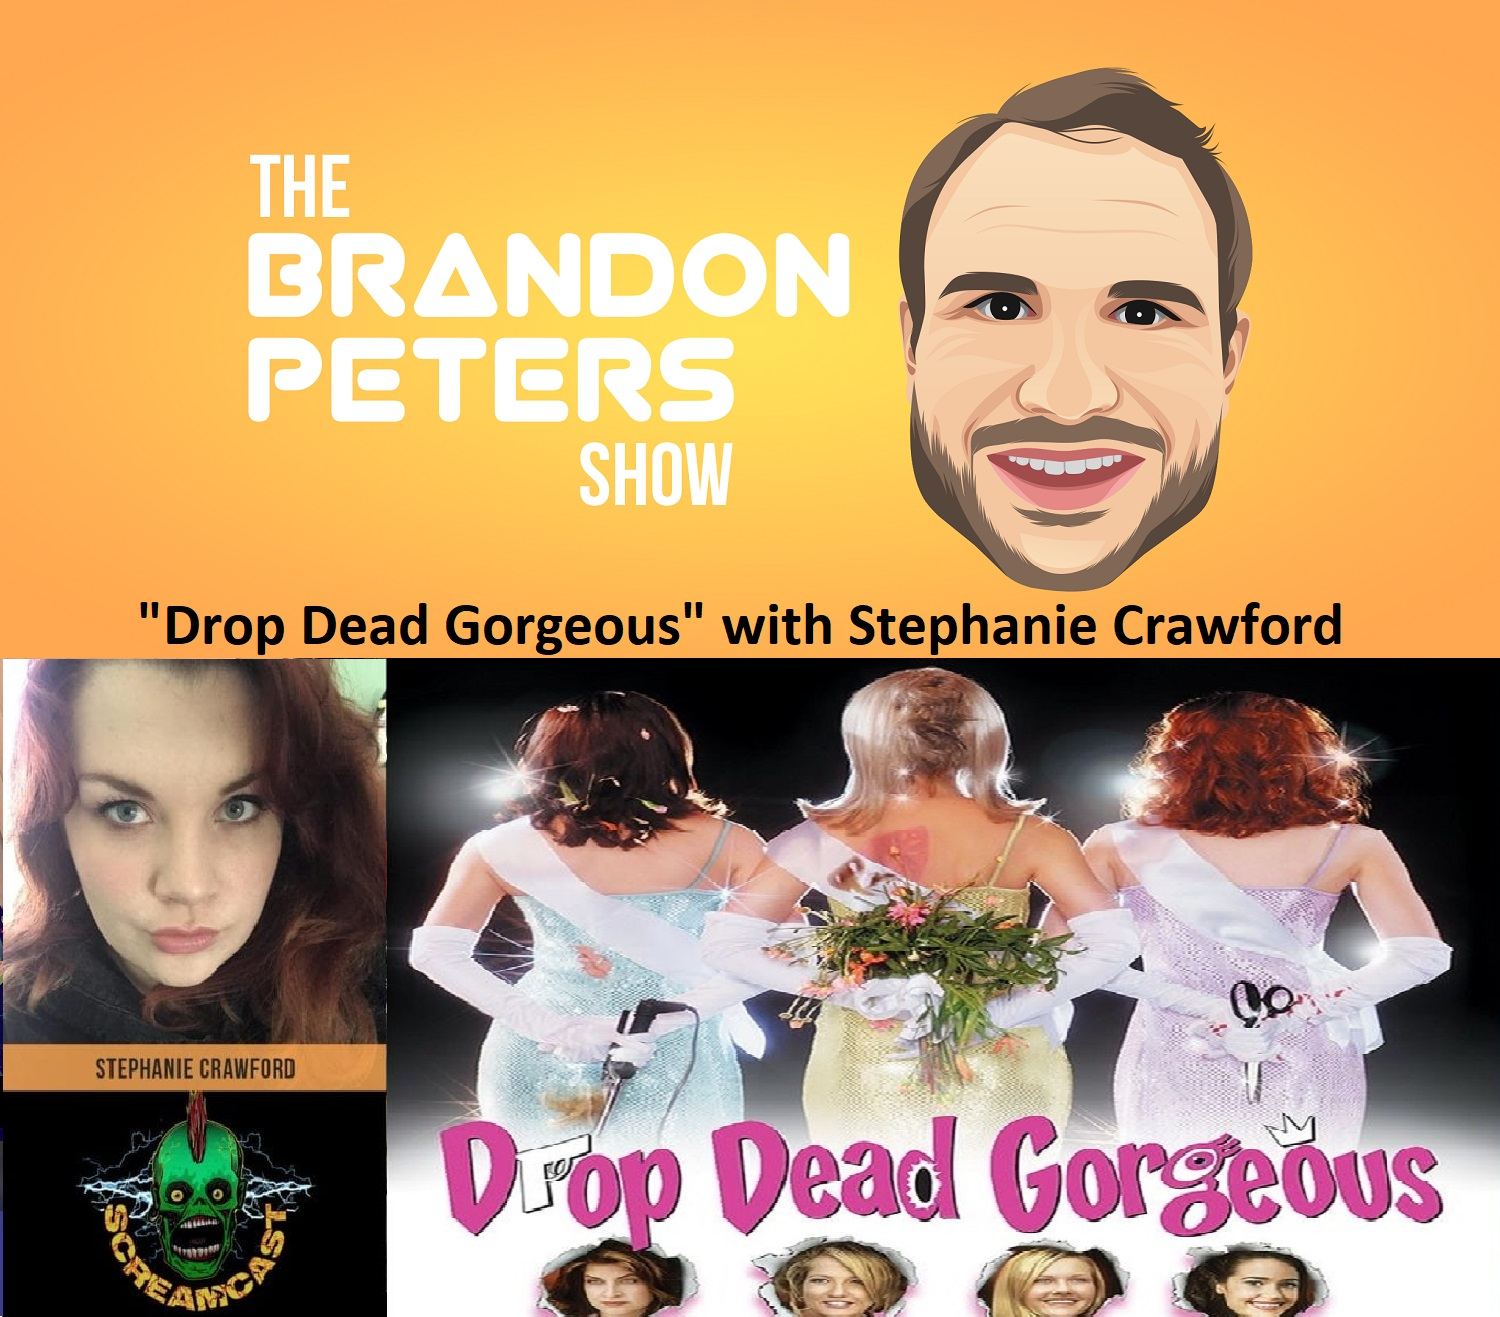 Drop Dead Gorgeous (1999) with Stephanie Crawford